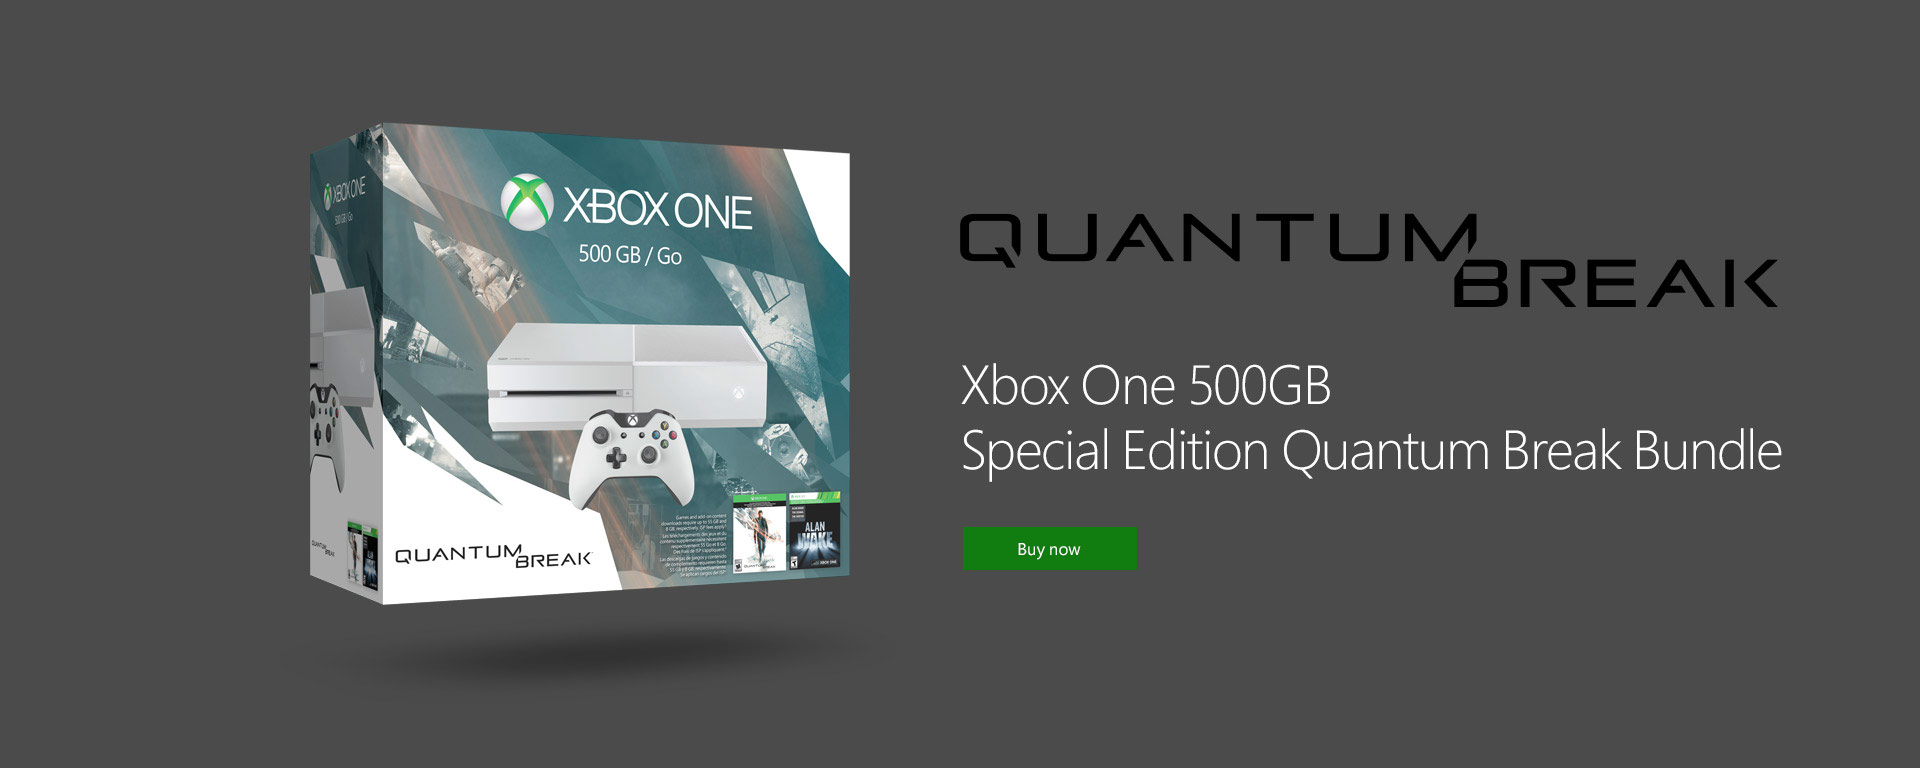 Special Edition Quantum Break Bundle